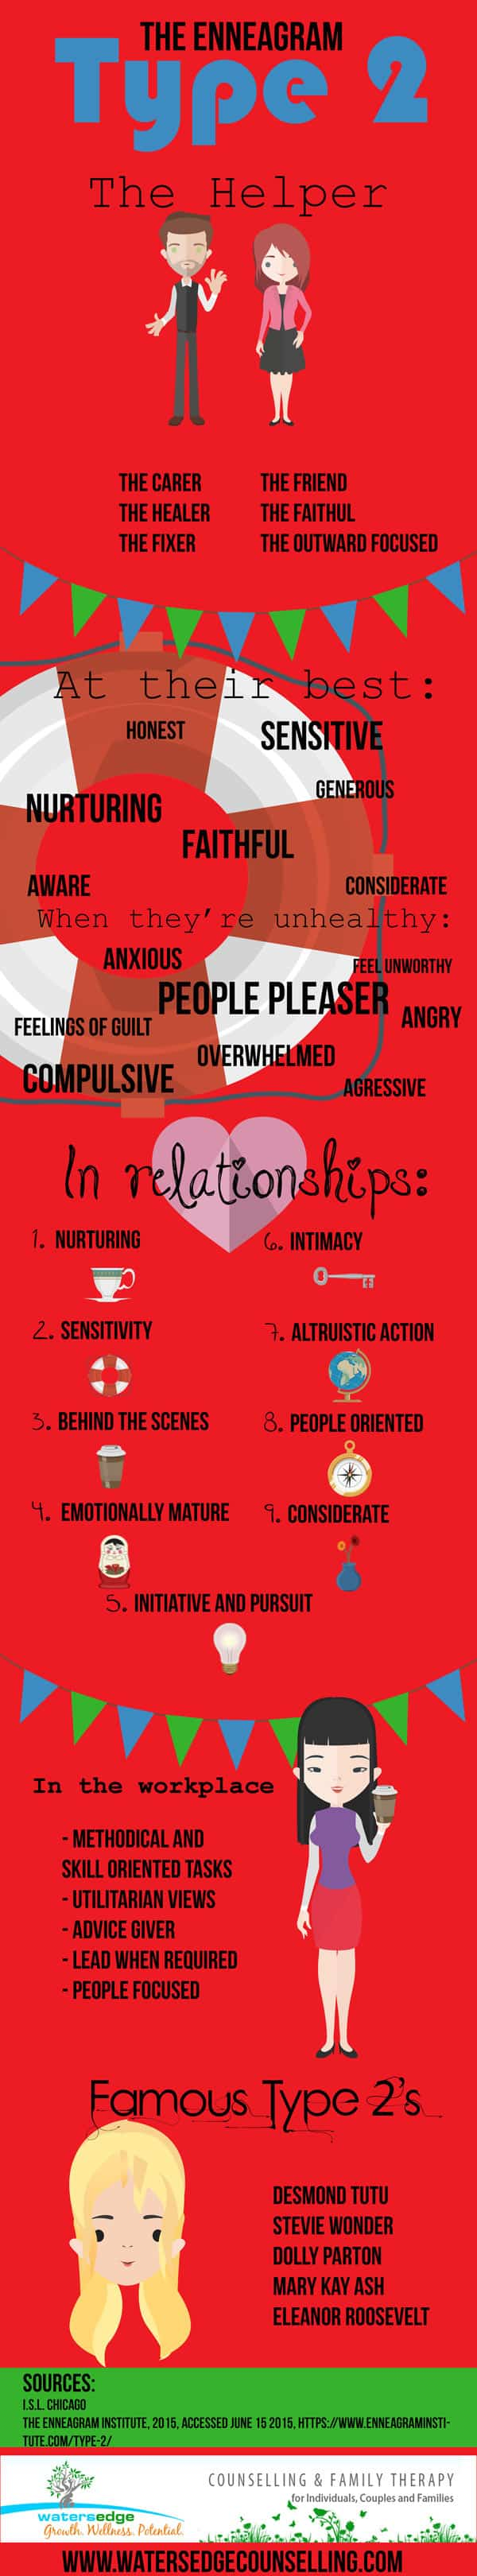 enneagram type 2 and 7 relationship book